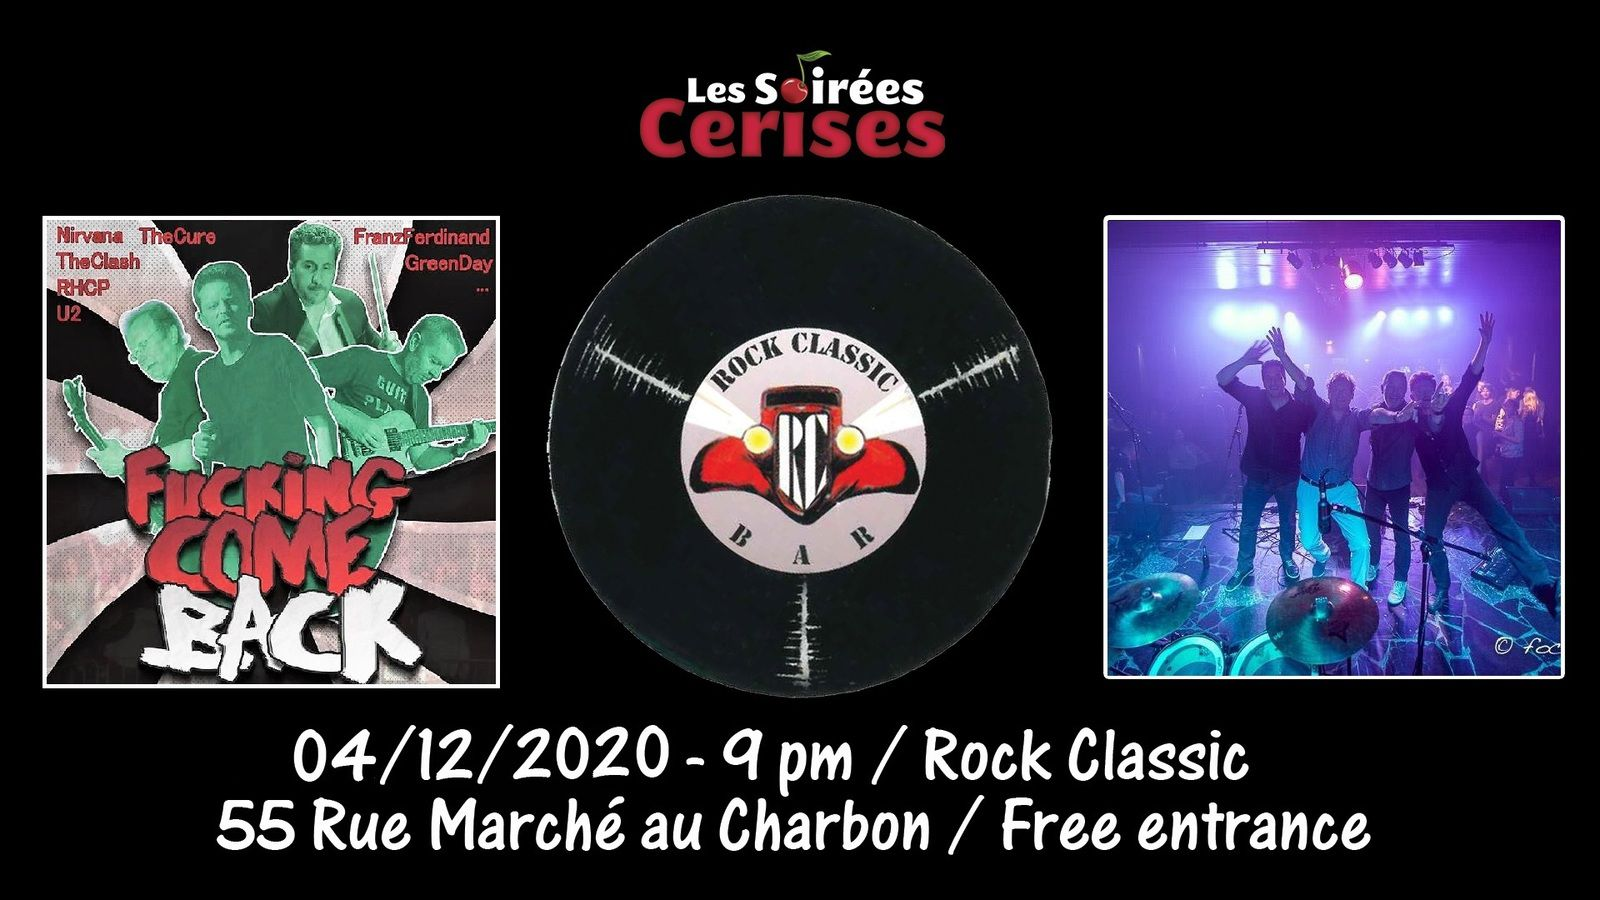 🎵 Fucking Come Back - The FCB's - Fucking Come Back - The FCB's - 21h00 - 04/12/2020 - 21h00 - Entrée gratuite / Free entrance